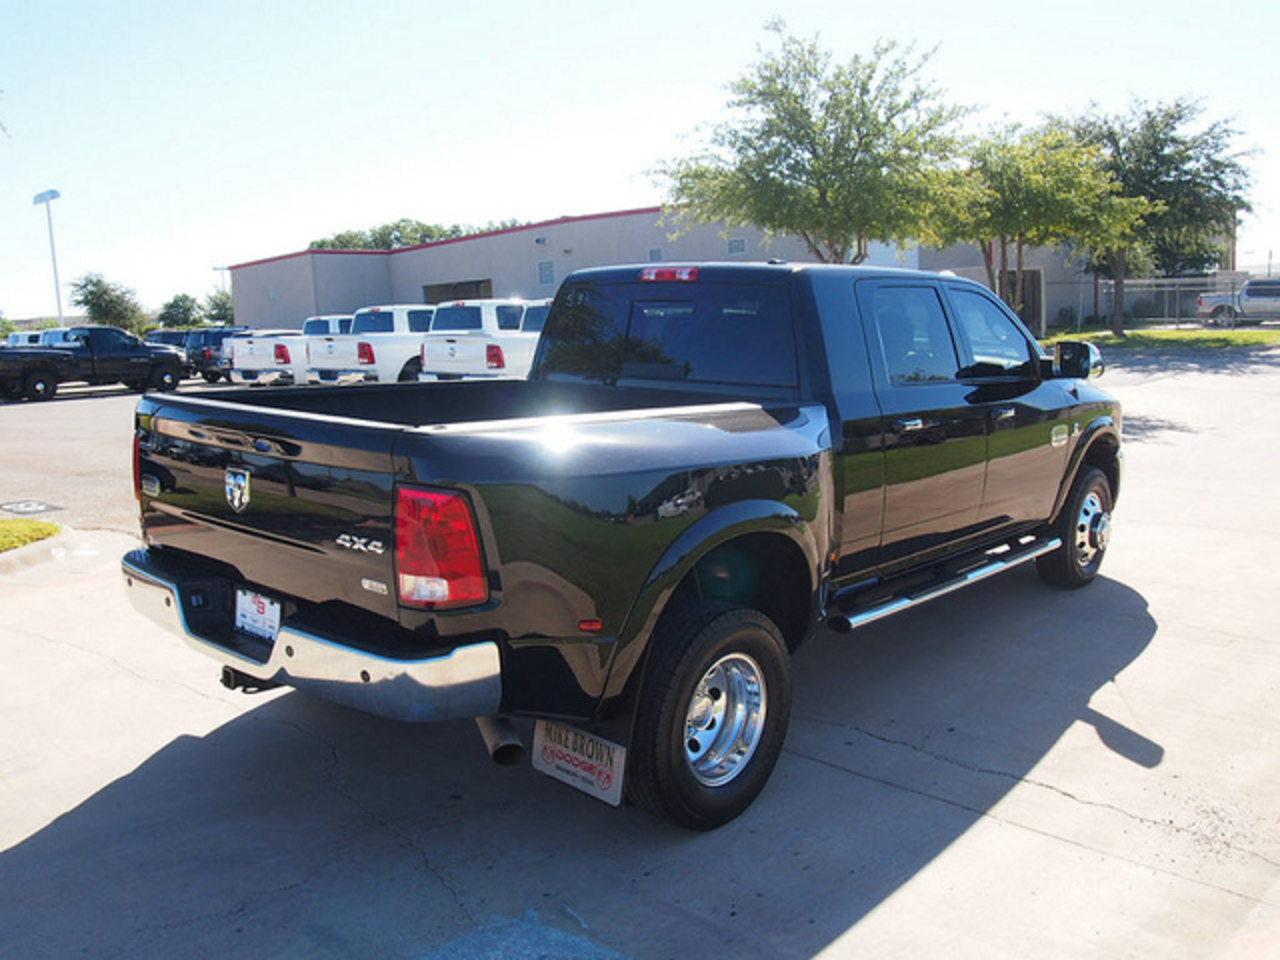 $53,991 for sale 2012 Dodge Ram 3500 Laramie Longhorn Limited ...